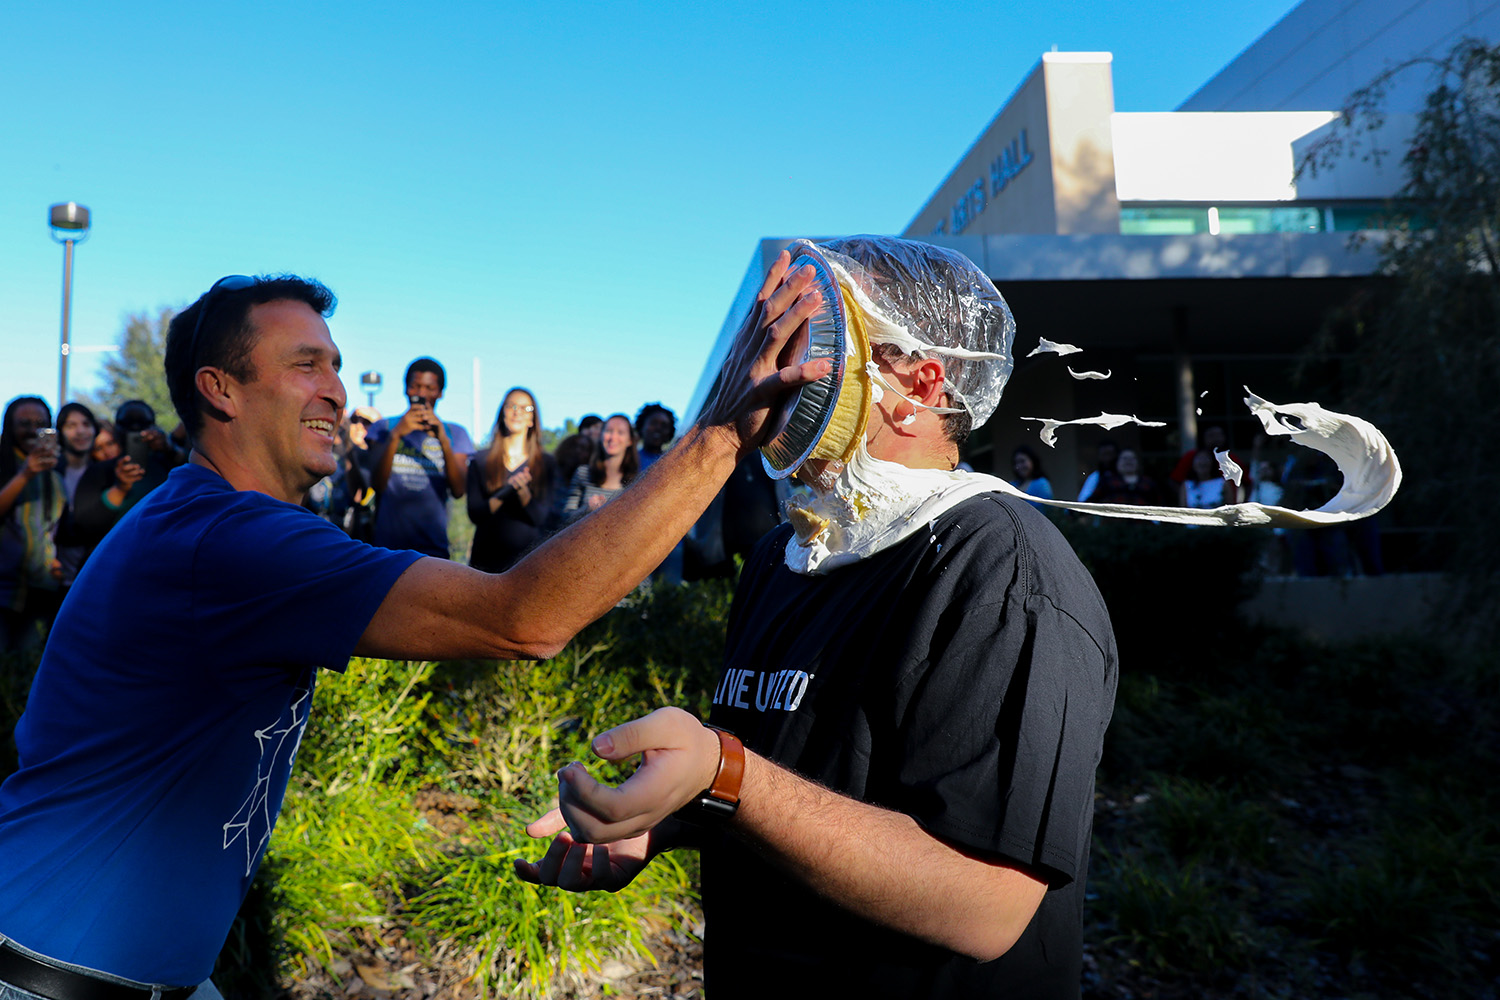 After losing the penny wars, Santa Fe College Student Body President Cale McCall received a pie in the on Friday, Nov. 17, 2017 in Gainesville, Fla. The SF faculty and staff defeated the students in the Penny Wars 2017 competition, awarding Vice President of Student Affairs Dr. Naima Brown the right to hit McCall with a pie. Dr. Brown decided not to hit McCall with the pie, instead giving the honor to Doug Bagby Associate Director of Student Life. Penny wars is a fundraising effort at Santa Fe College for the United Way of North Central Florida. (Photo by Matt Stamey/Santa Fe College) ***SUbjects have Releases***